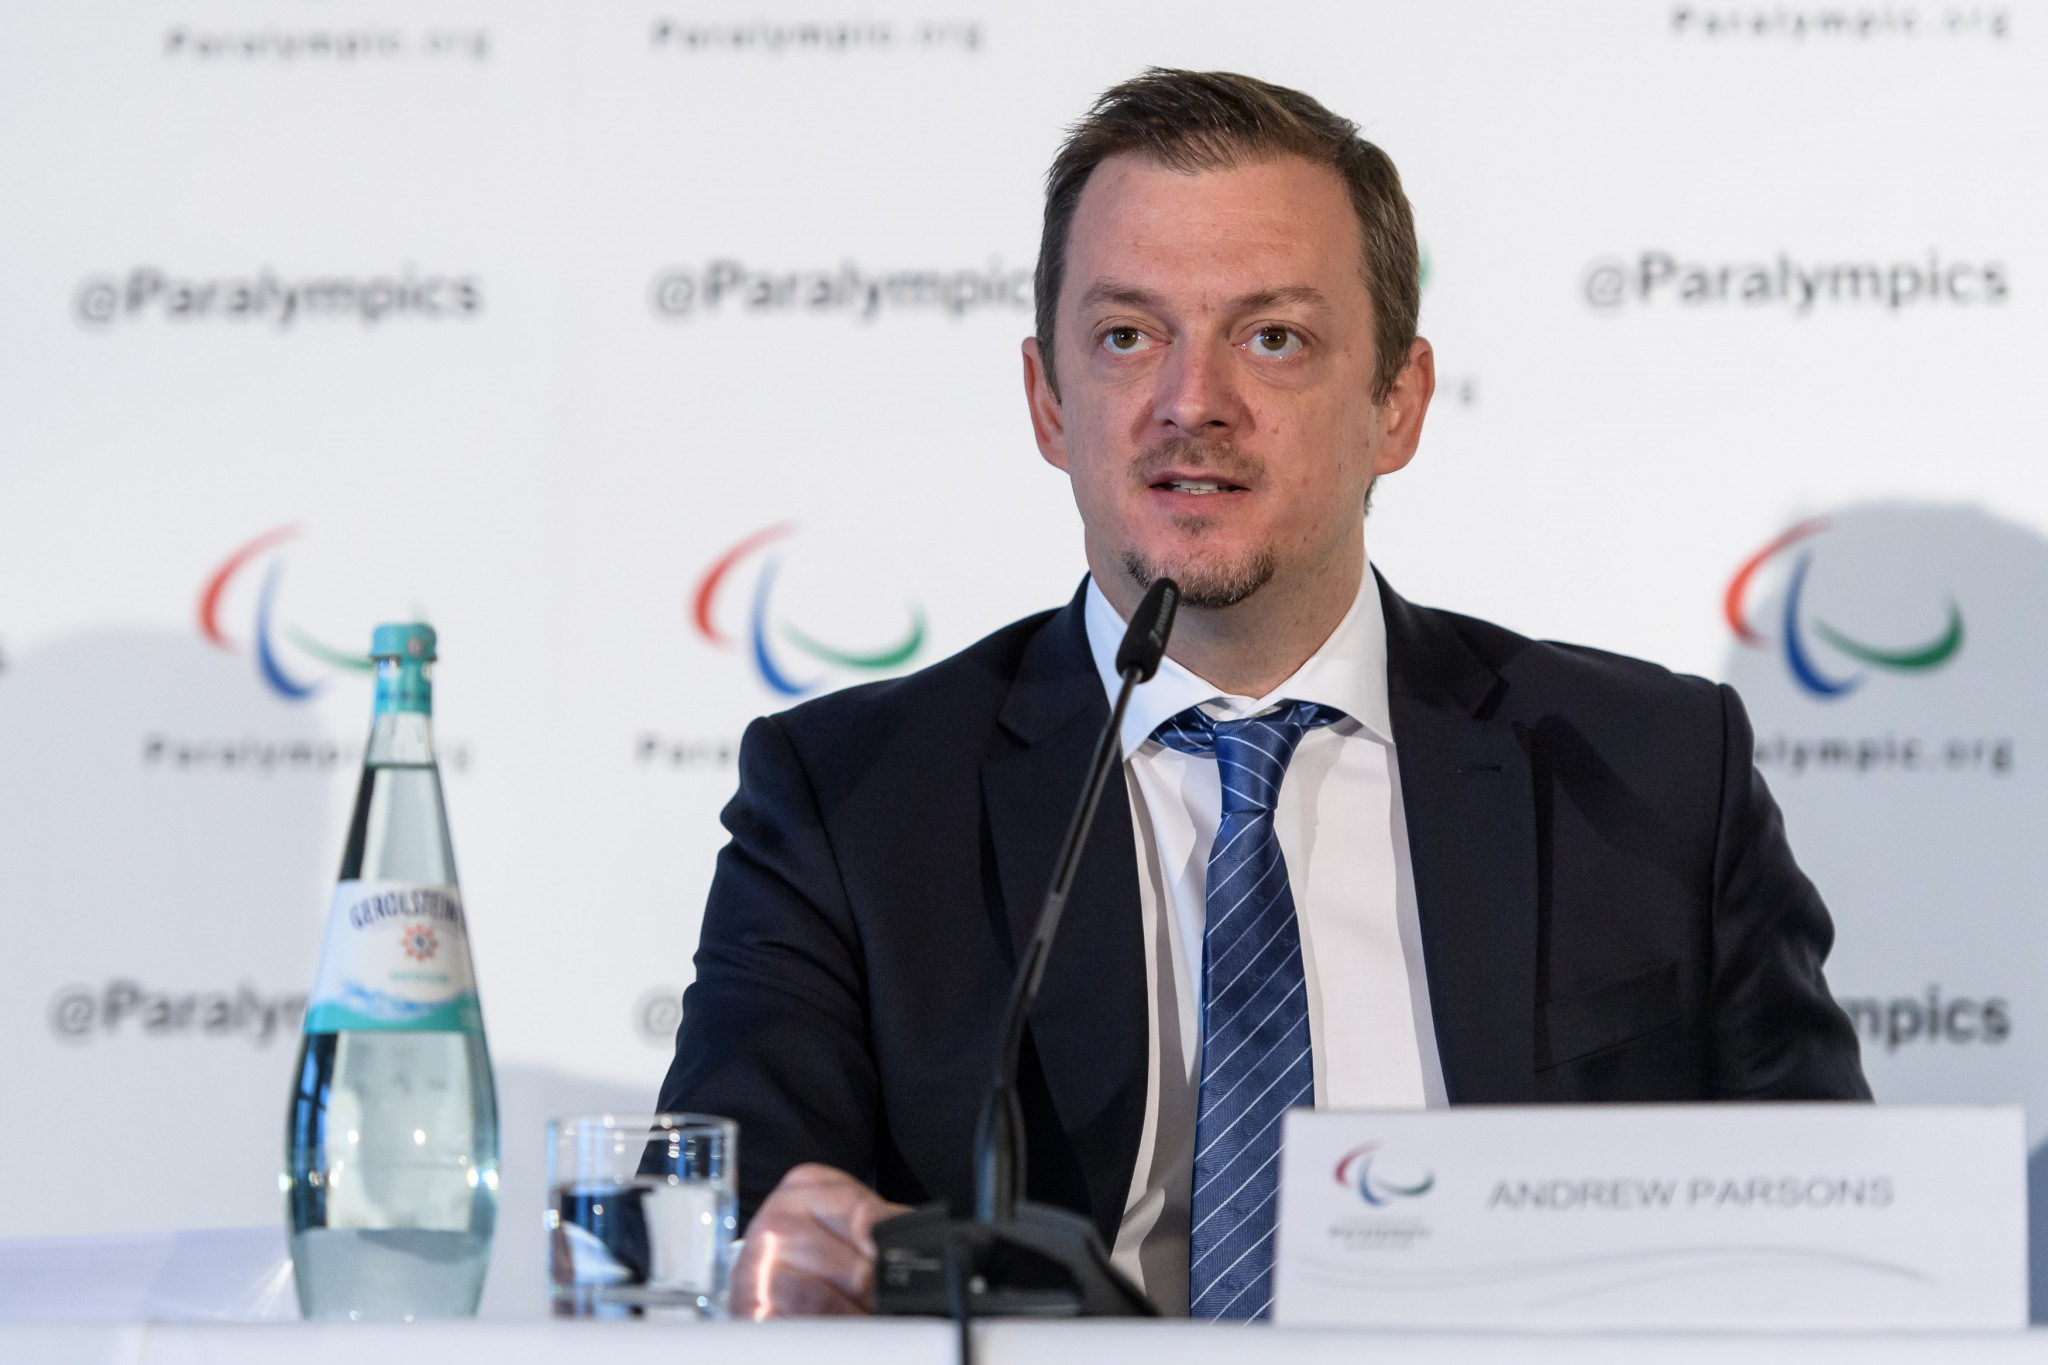 IPC President Andrew Parsons has highlighted survey data indicating a greater awareness of the Paralympics within Japan than there was within Britain at the same relative stage before the London 2012 Games ©Getty Images